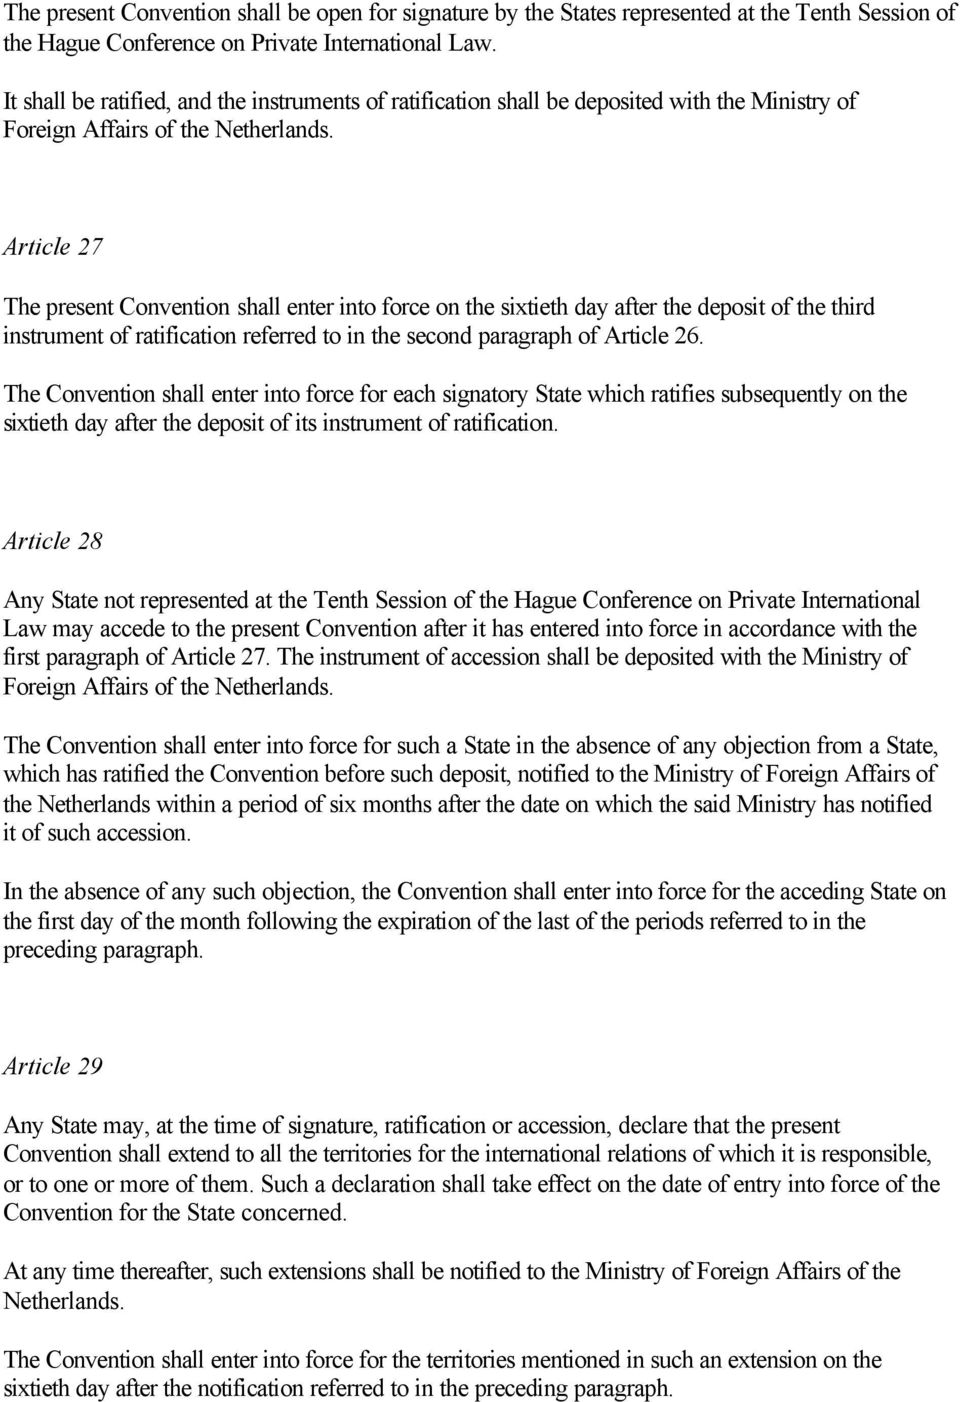 Article 27 The present Convention shall enter into force on the sixtieth day after the deposit of the third instrument of ratification referred to in the second paragraph of Article 26.